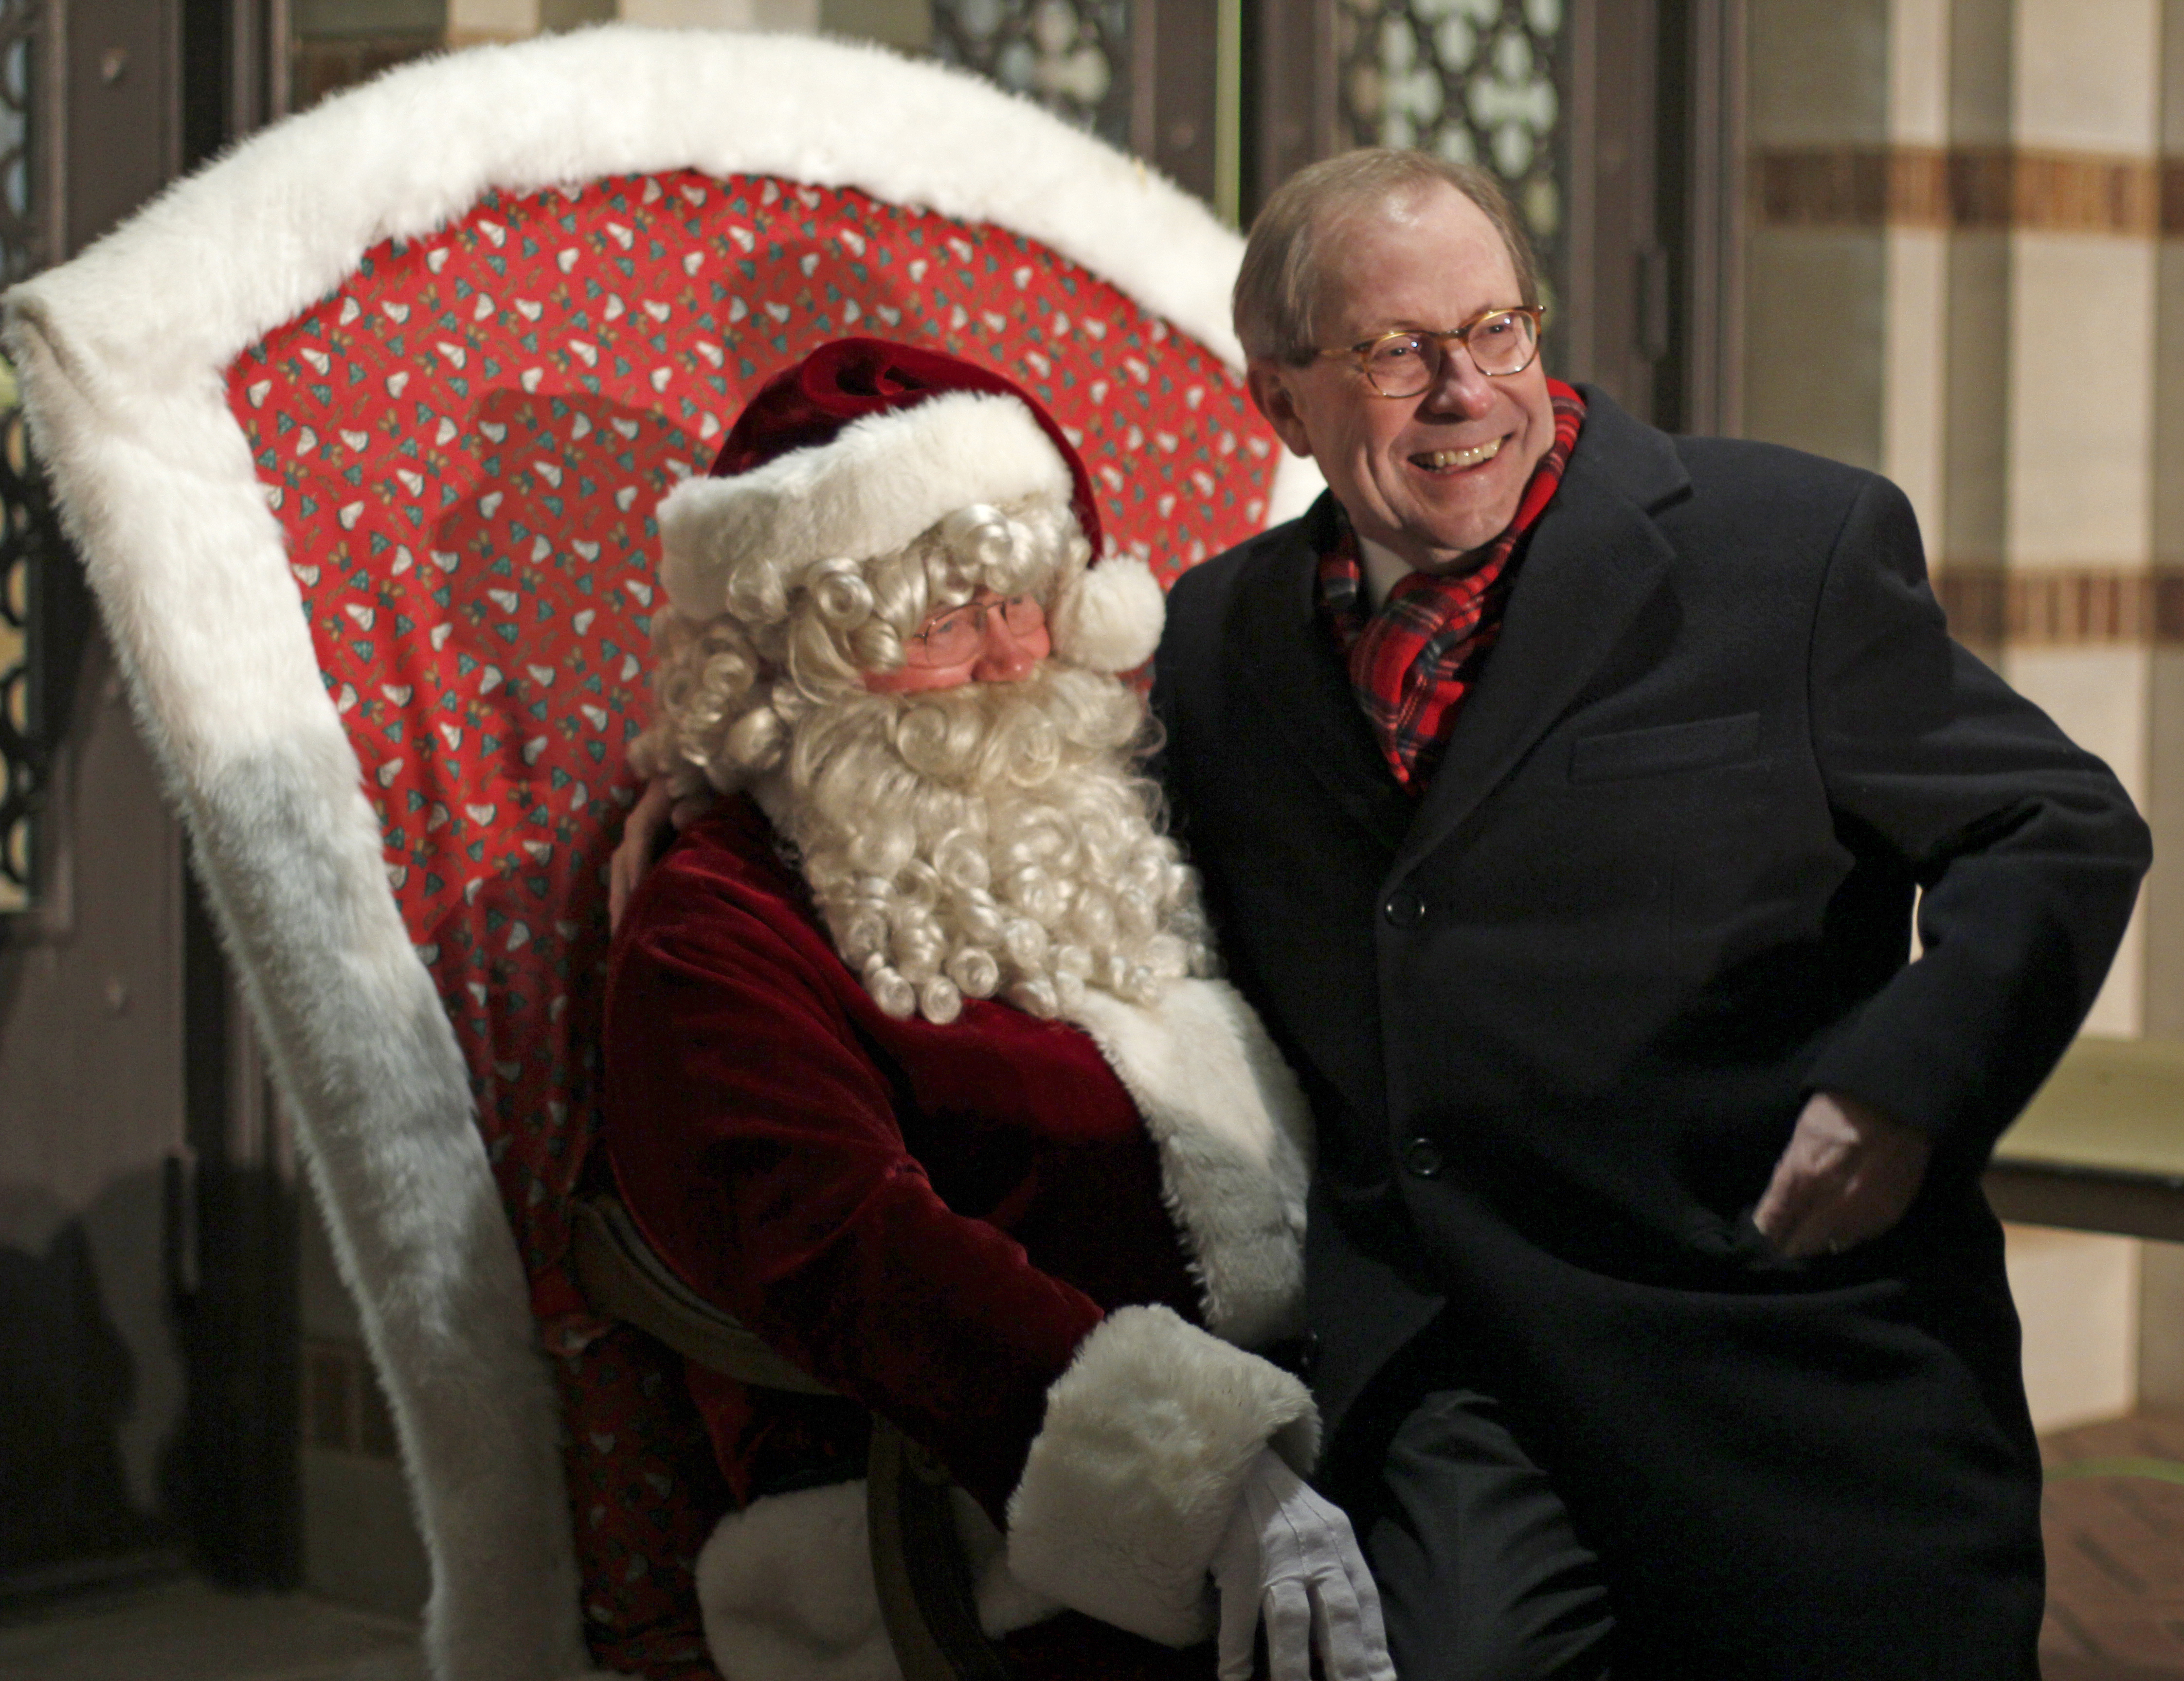 University President Jesse Rogers sits on Santa's lap at the Fantasy of Lights opening Dec. 10.